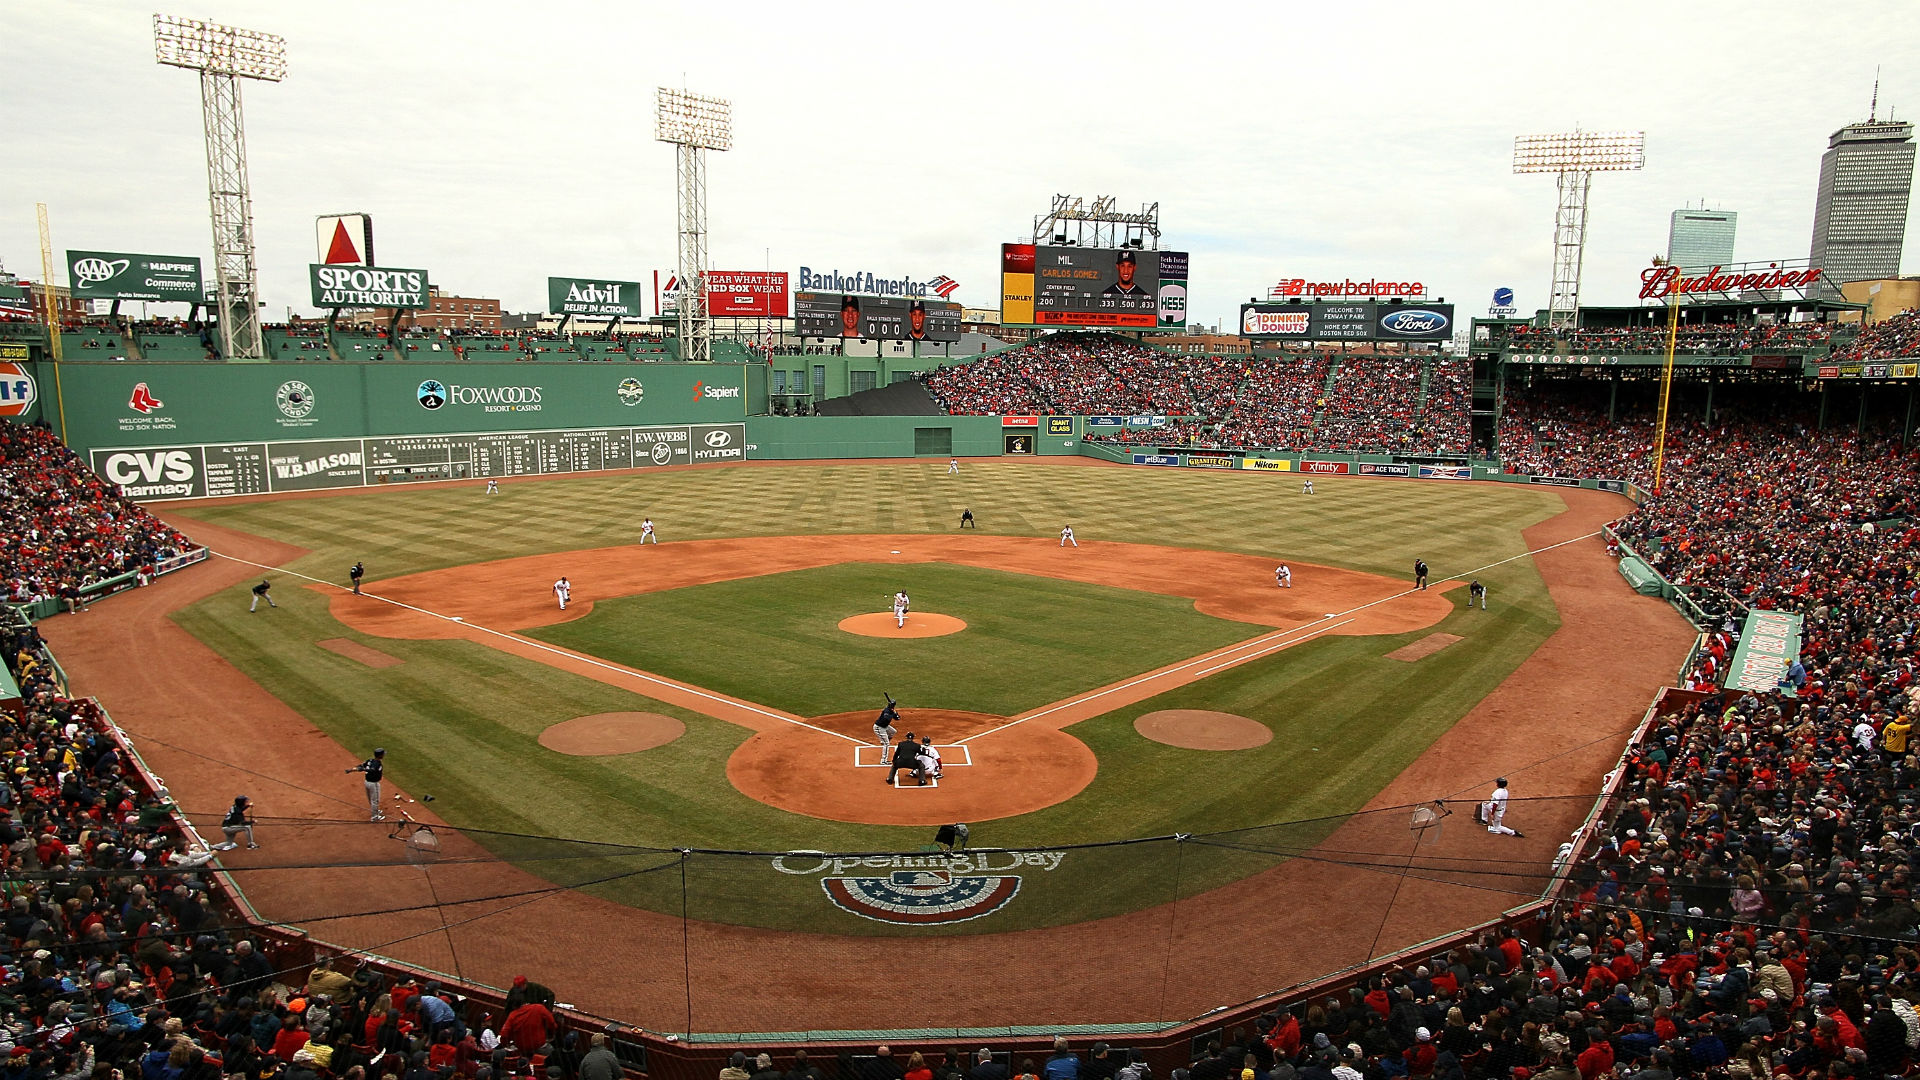 fenway park 2018 fenway park concert guide - fenway, ma - concert season at fenway park starts june 15 with the zac brown band.